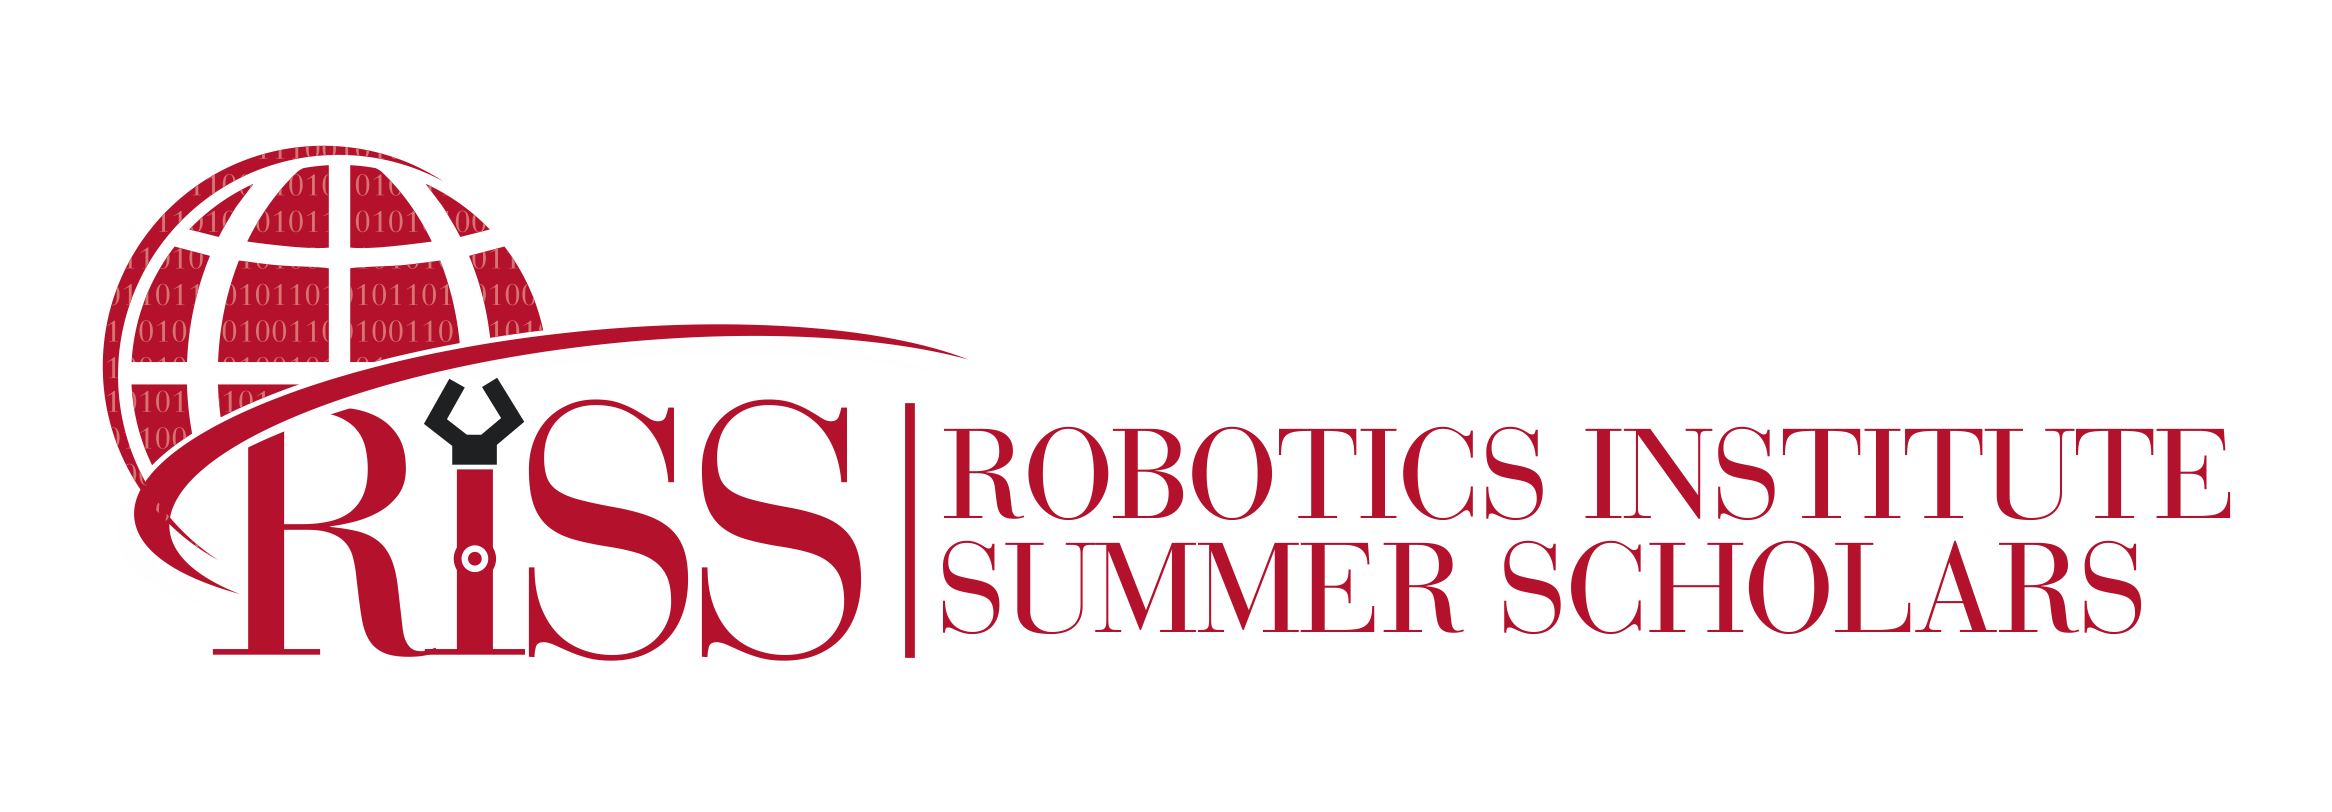 Robotics Institute Summer Scholars (RISS) Logo